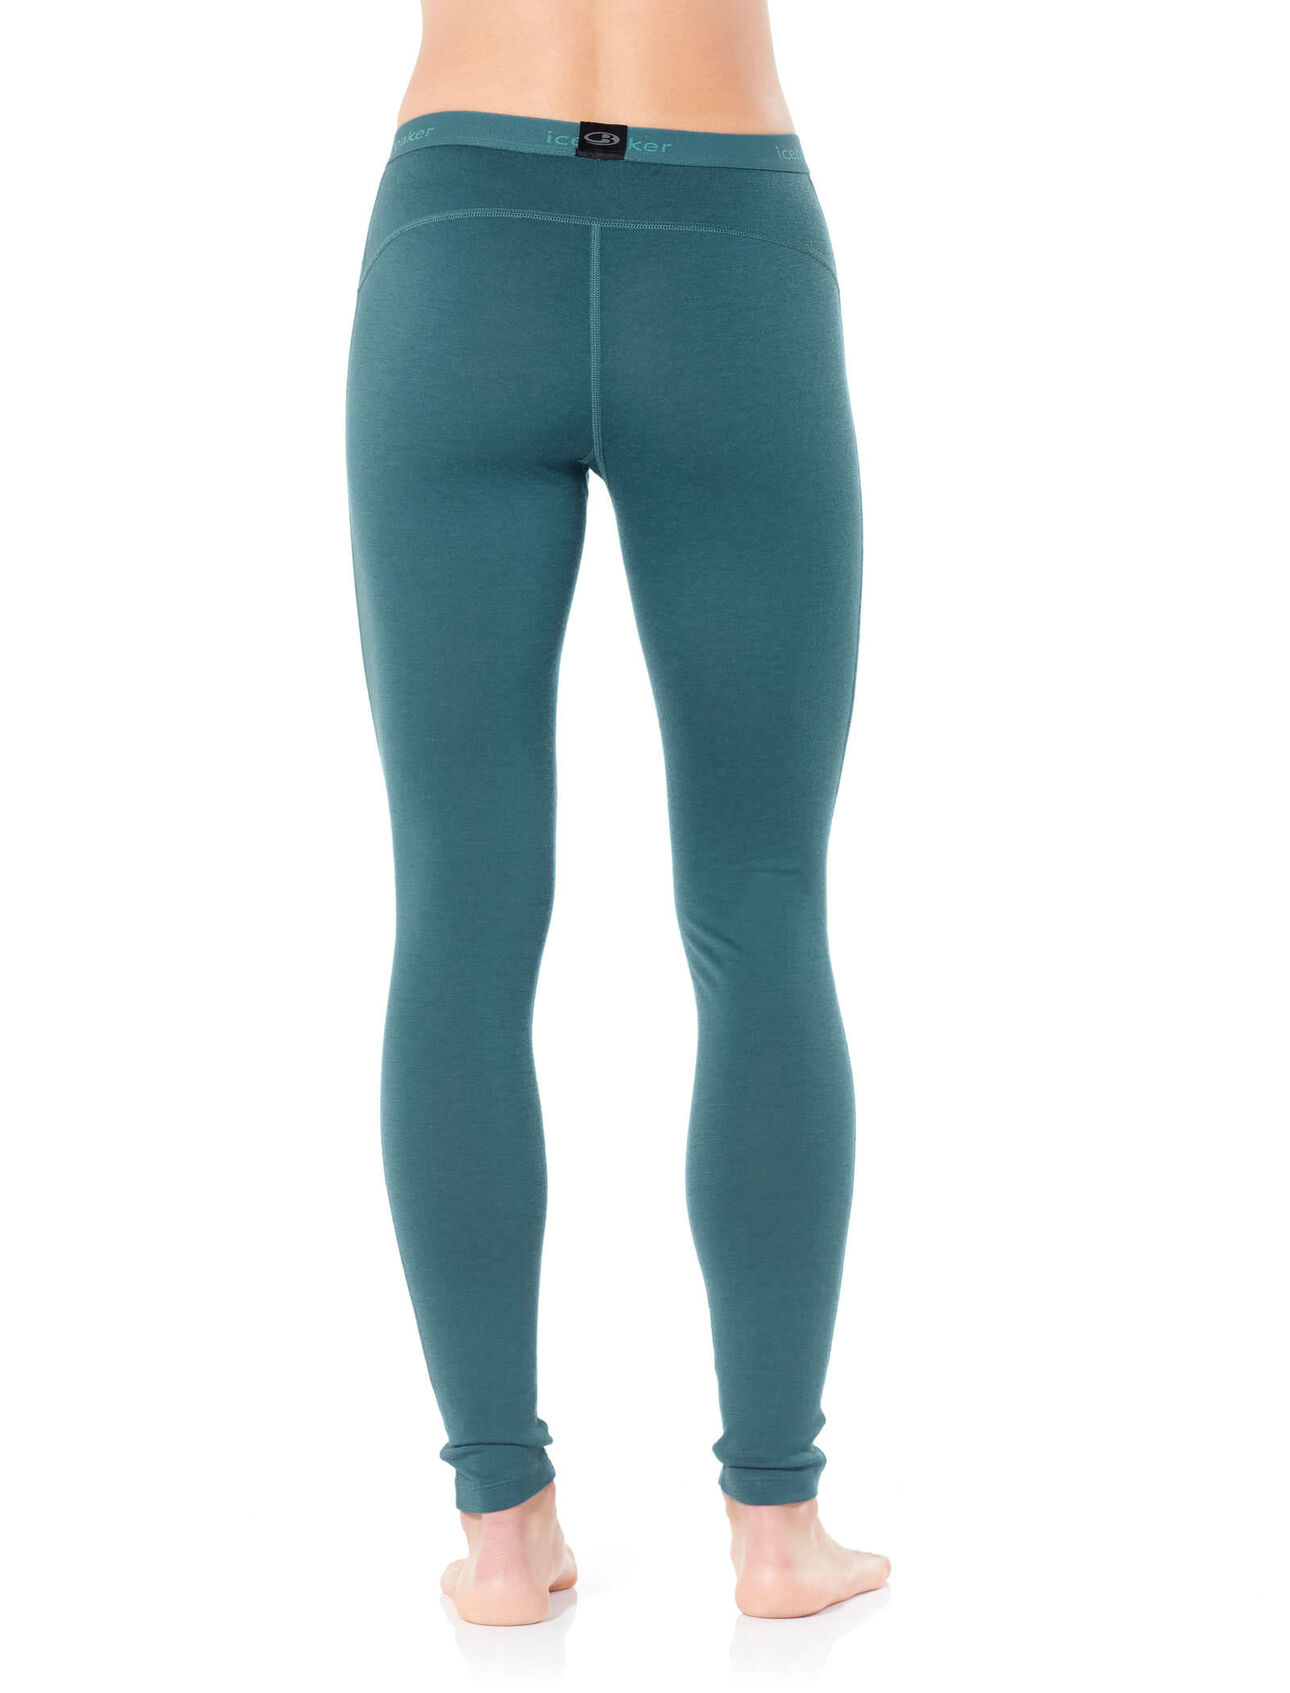 b1d77d21104c3 200 Oasis Leggings - Icebreaker (UK)